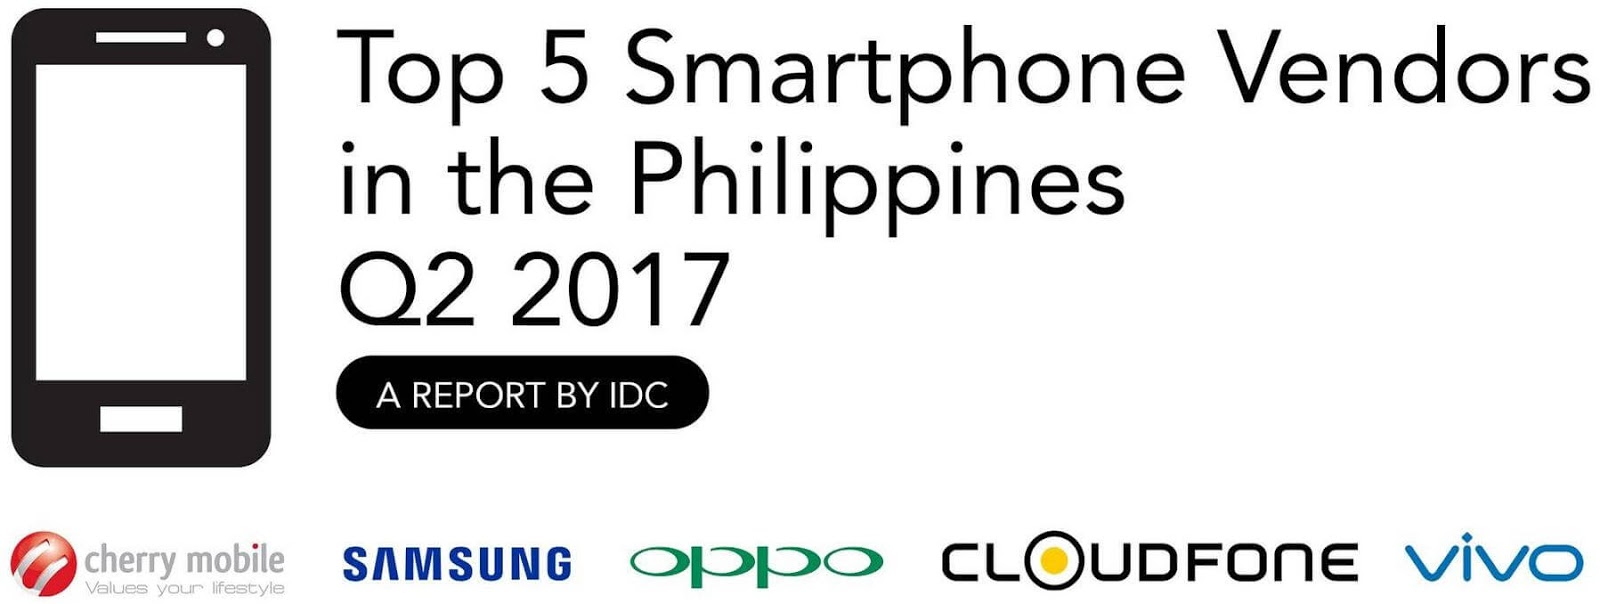 CloudFone Is Now the Top 4 Smartphone Brand in the Philippines